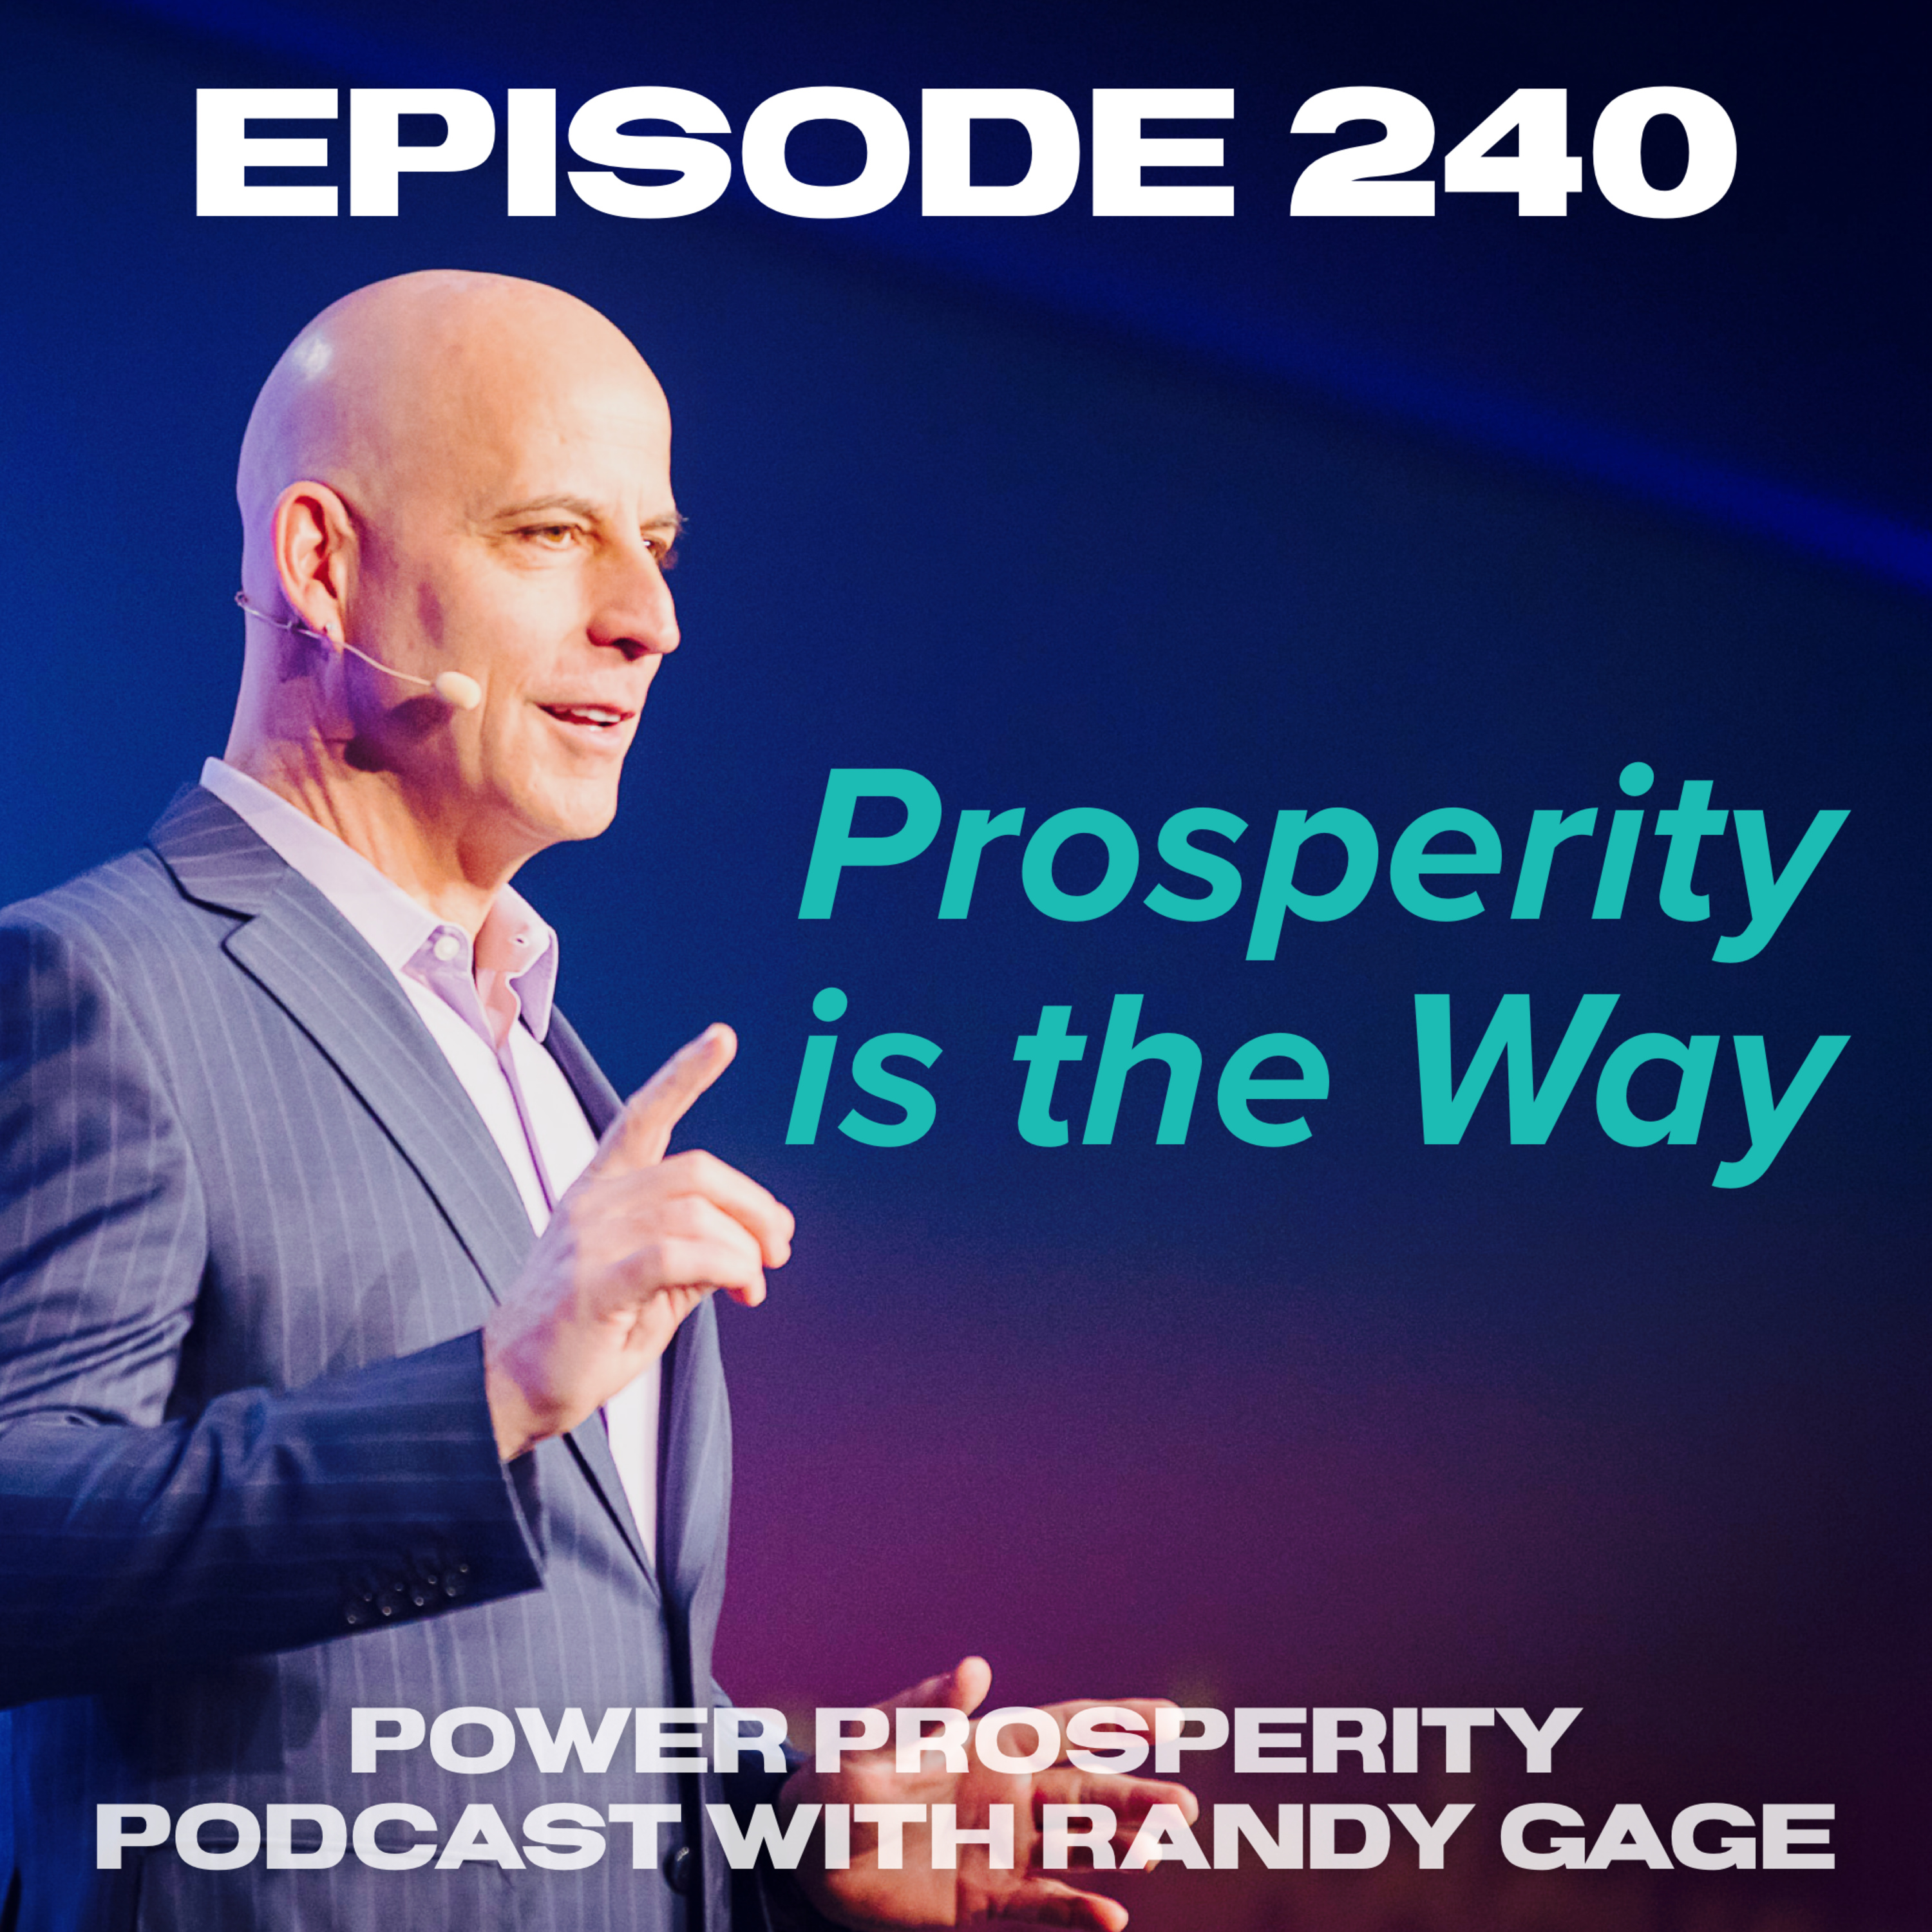 Episode 240: Prosperity is the Way (Podcast Exclusive)